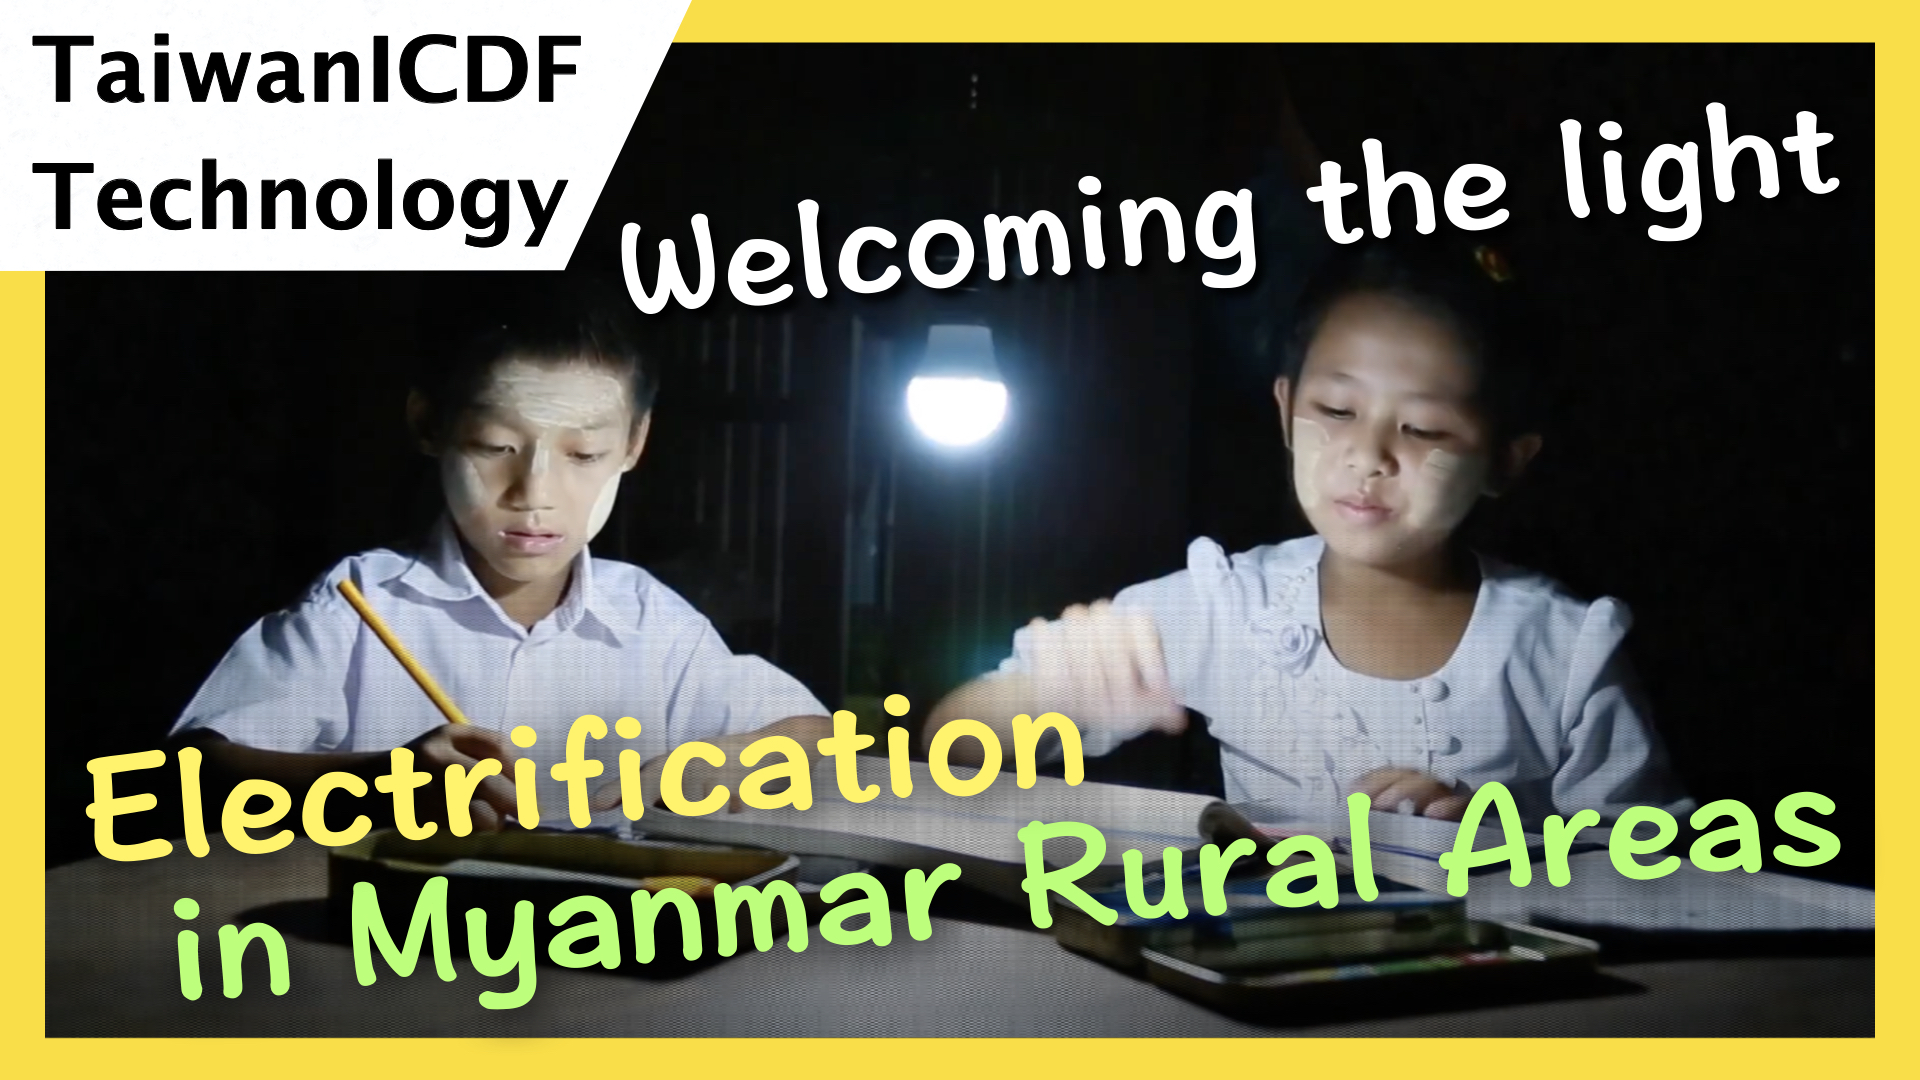 Welcoming the Light --- Solar PV Mini-Grid System for Lighting in Myanmar Rural Areas